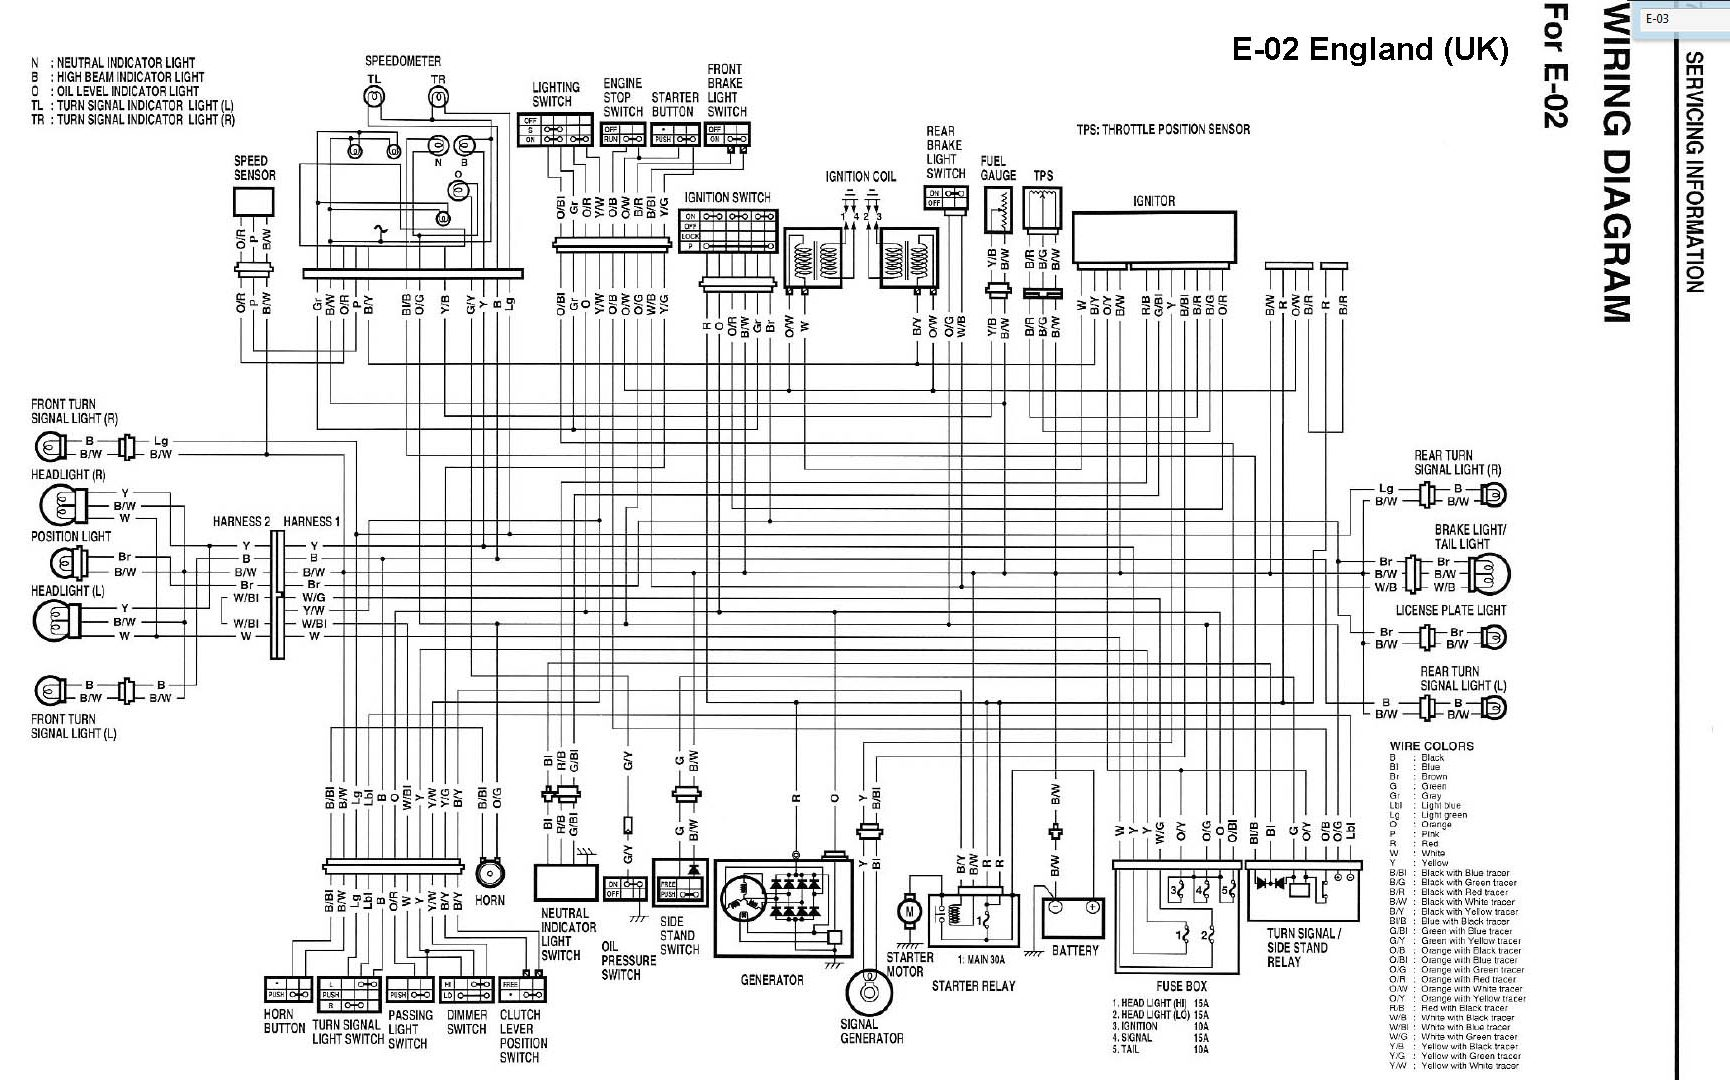 suzuki gsxf katana 600f 750f 1100f skhema elektroprovodki wiring diagram 1?resize\\\\\\\\\\\\\\\\\\\\\\\\\\\\\\\\\\\\\\\\\\\\\\\\\\\\\\\\\\\\\\\\\\\\\\\\\\\\\\\\\\\\\\\\\\\\\\\\\\\\\\\\\\\\\\\\\\\\\\\\\\\\\\\\\\\\\\\\\\\\\\\\\\\\\\\\\\\\\\\\\\\\\\\\\\\\\\\\\\\\\\\\\\\\\\\\\\\\\\\\\\\\\\\\\\\\\\\\\\\\\\\\\\\\\\\\\\\\\\\\\\\\\\\\\\\\\\\\\\\\\\\\\\\\\\\\\\\\\\\\\\\\\\\\\\\\\\\\\\\\\\\\\\\\\\\\\\\\\\\\\\\\\\\\\\\\\\\\\\\\\\\\\\\\\\\\\\\\\\\\\\\\\\\\\\\\\\\\\\\\\\\=665%2C415 sv650 wiring diagram suzuki katana on sv650 download wirning diagrams 2006 sv650 wiring diagram at reclaimingppi.co